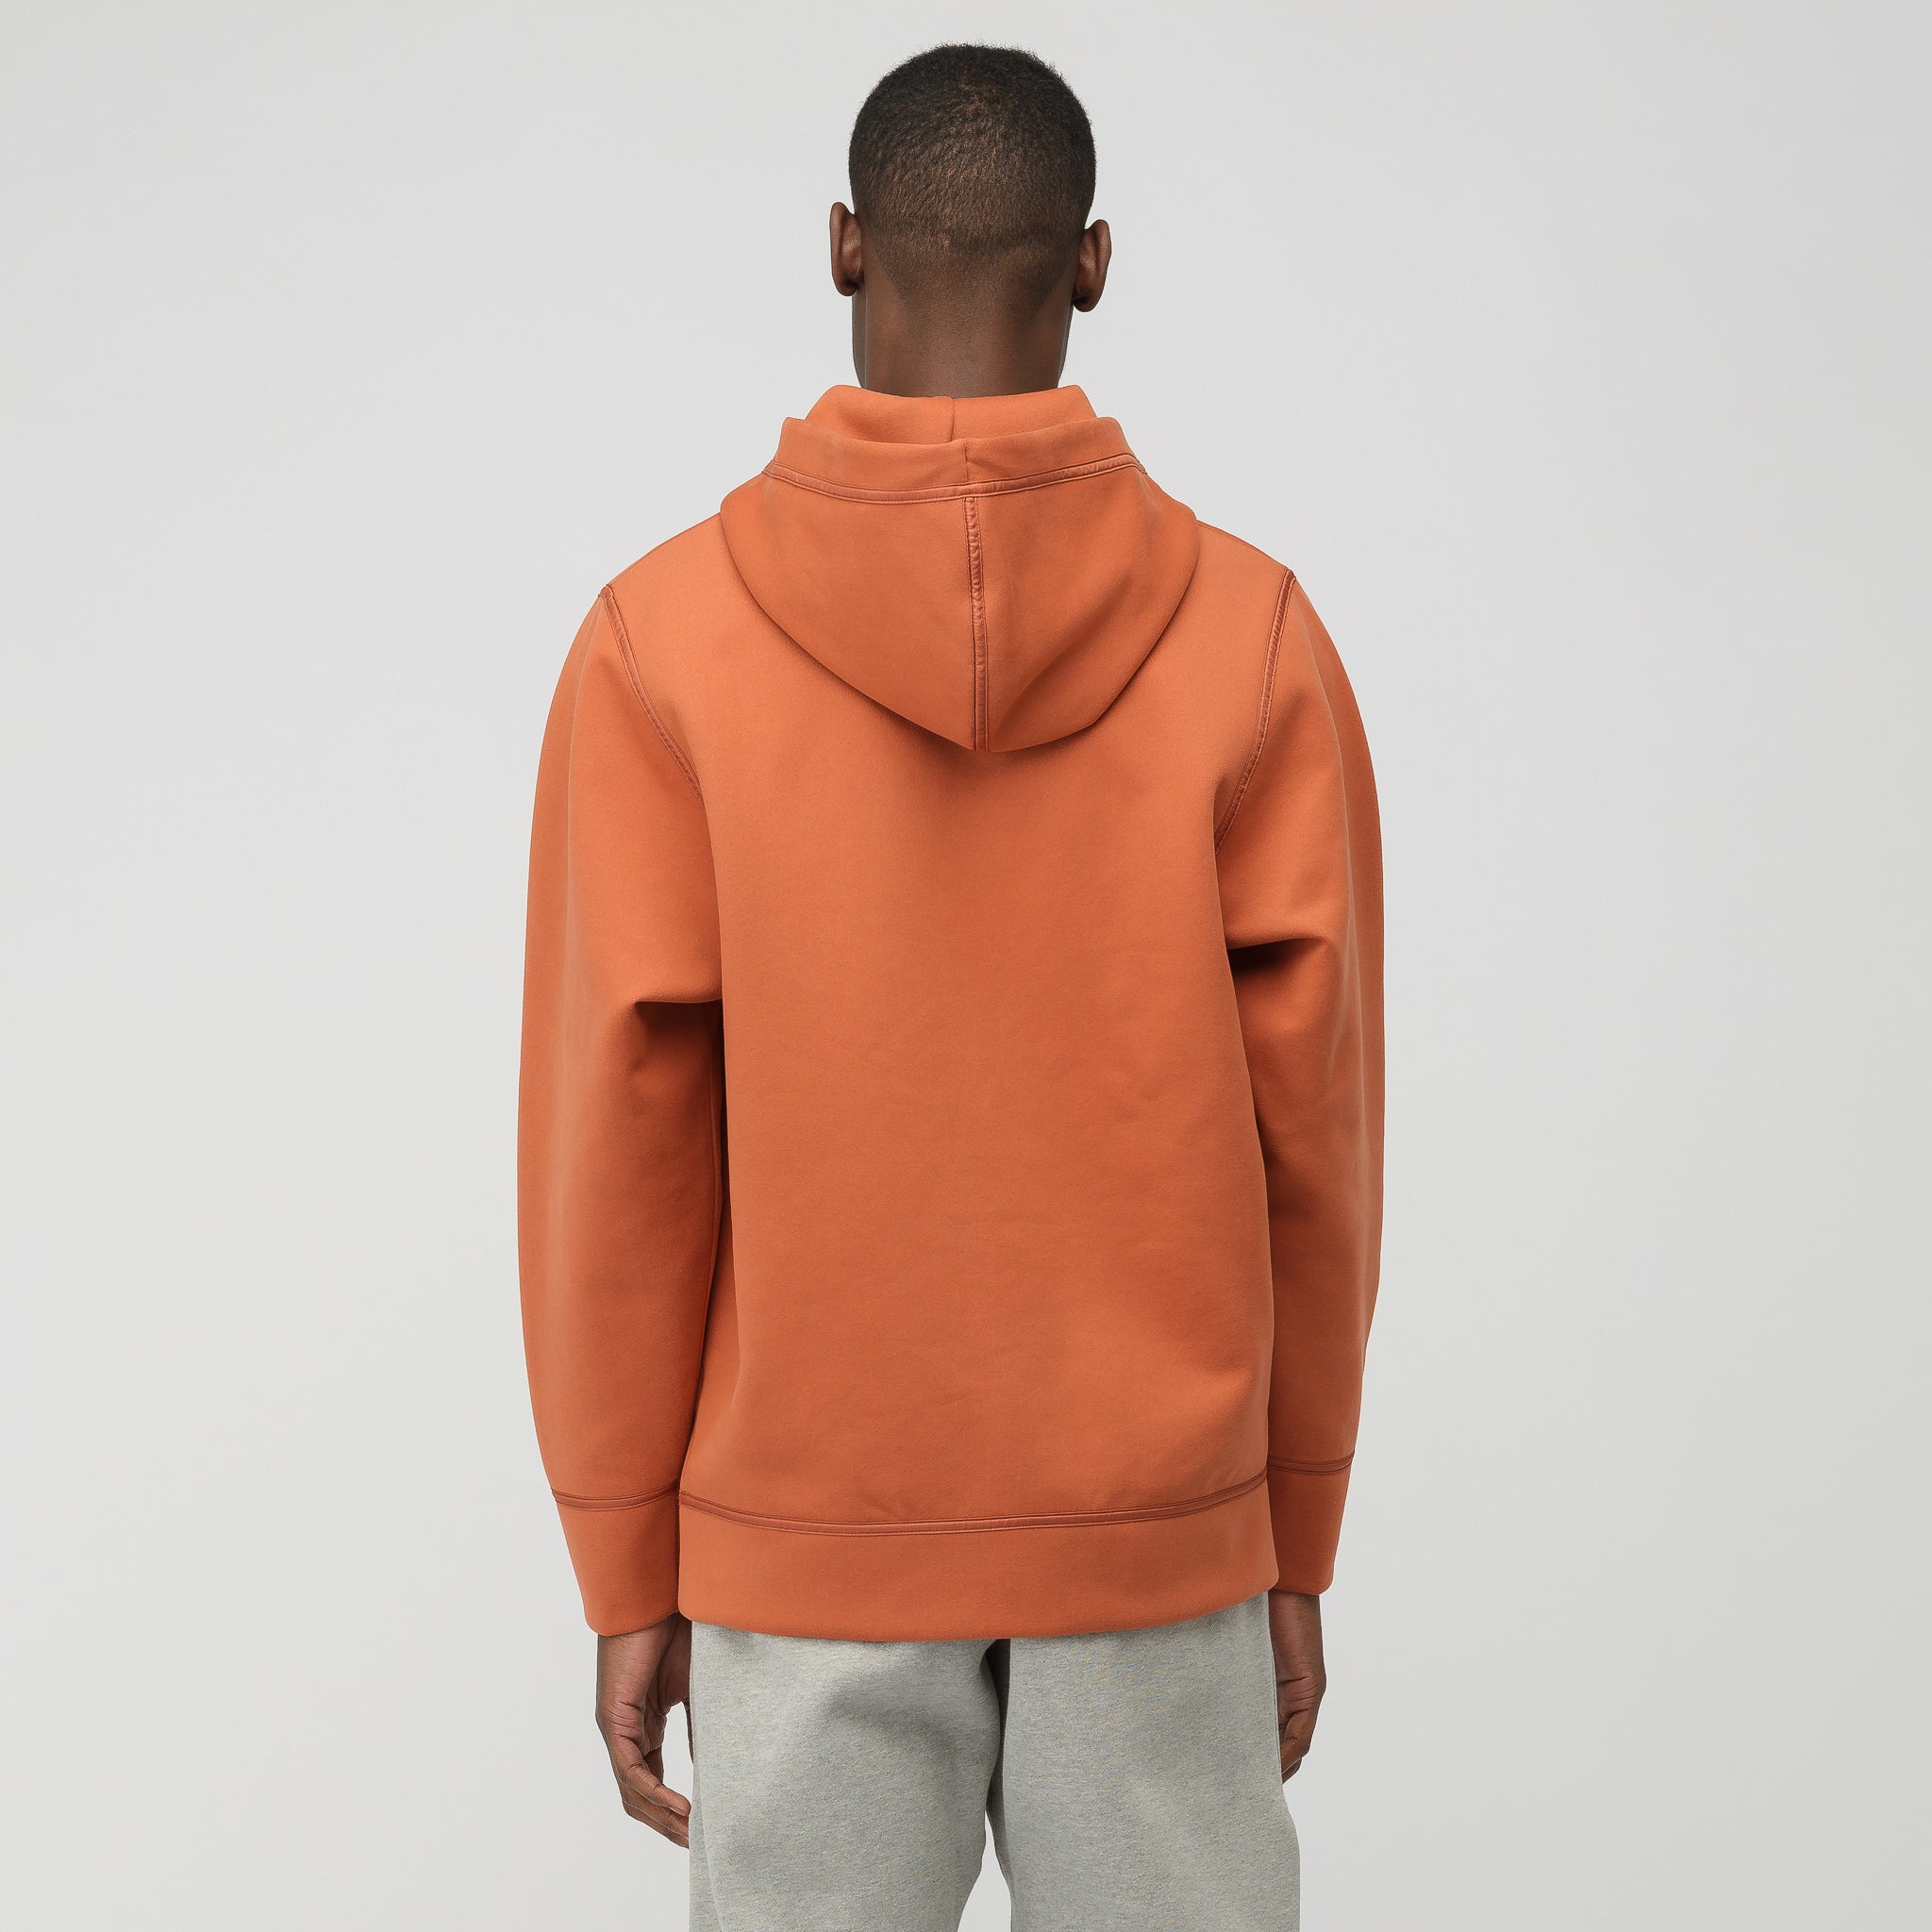 Remastered Hoodie in Dusty Peach